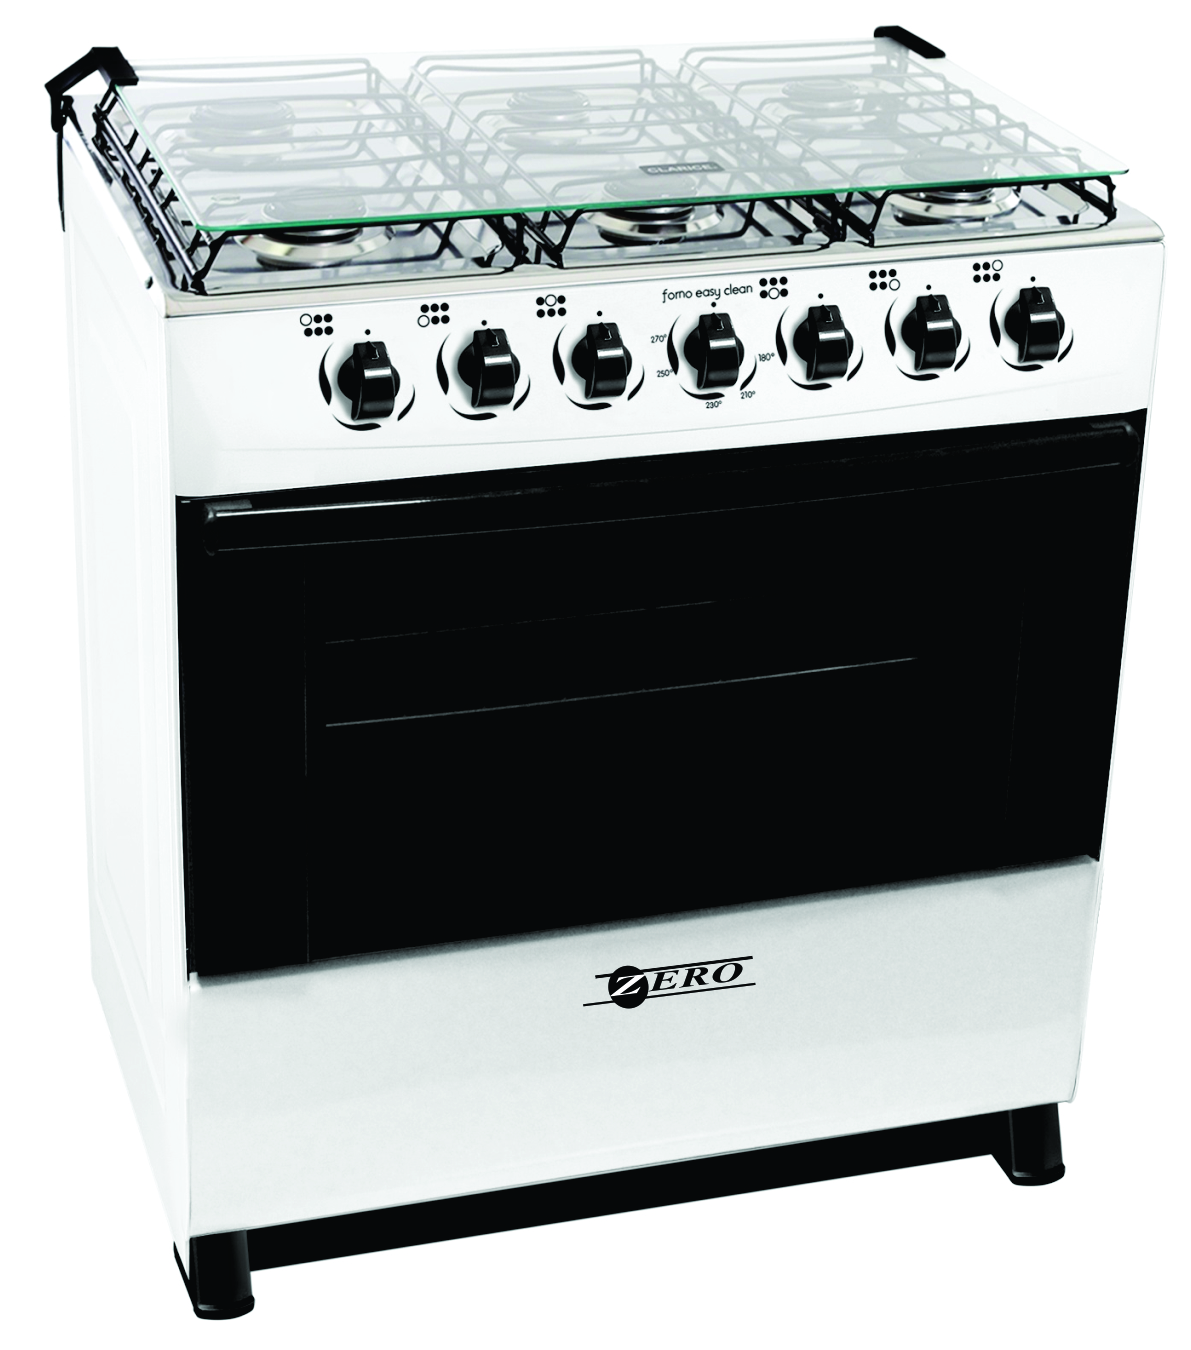 6-burner-gas-stove-with-ffd-on-all-functions